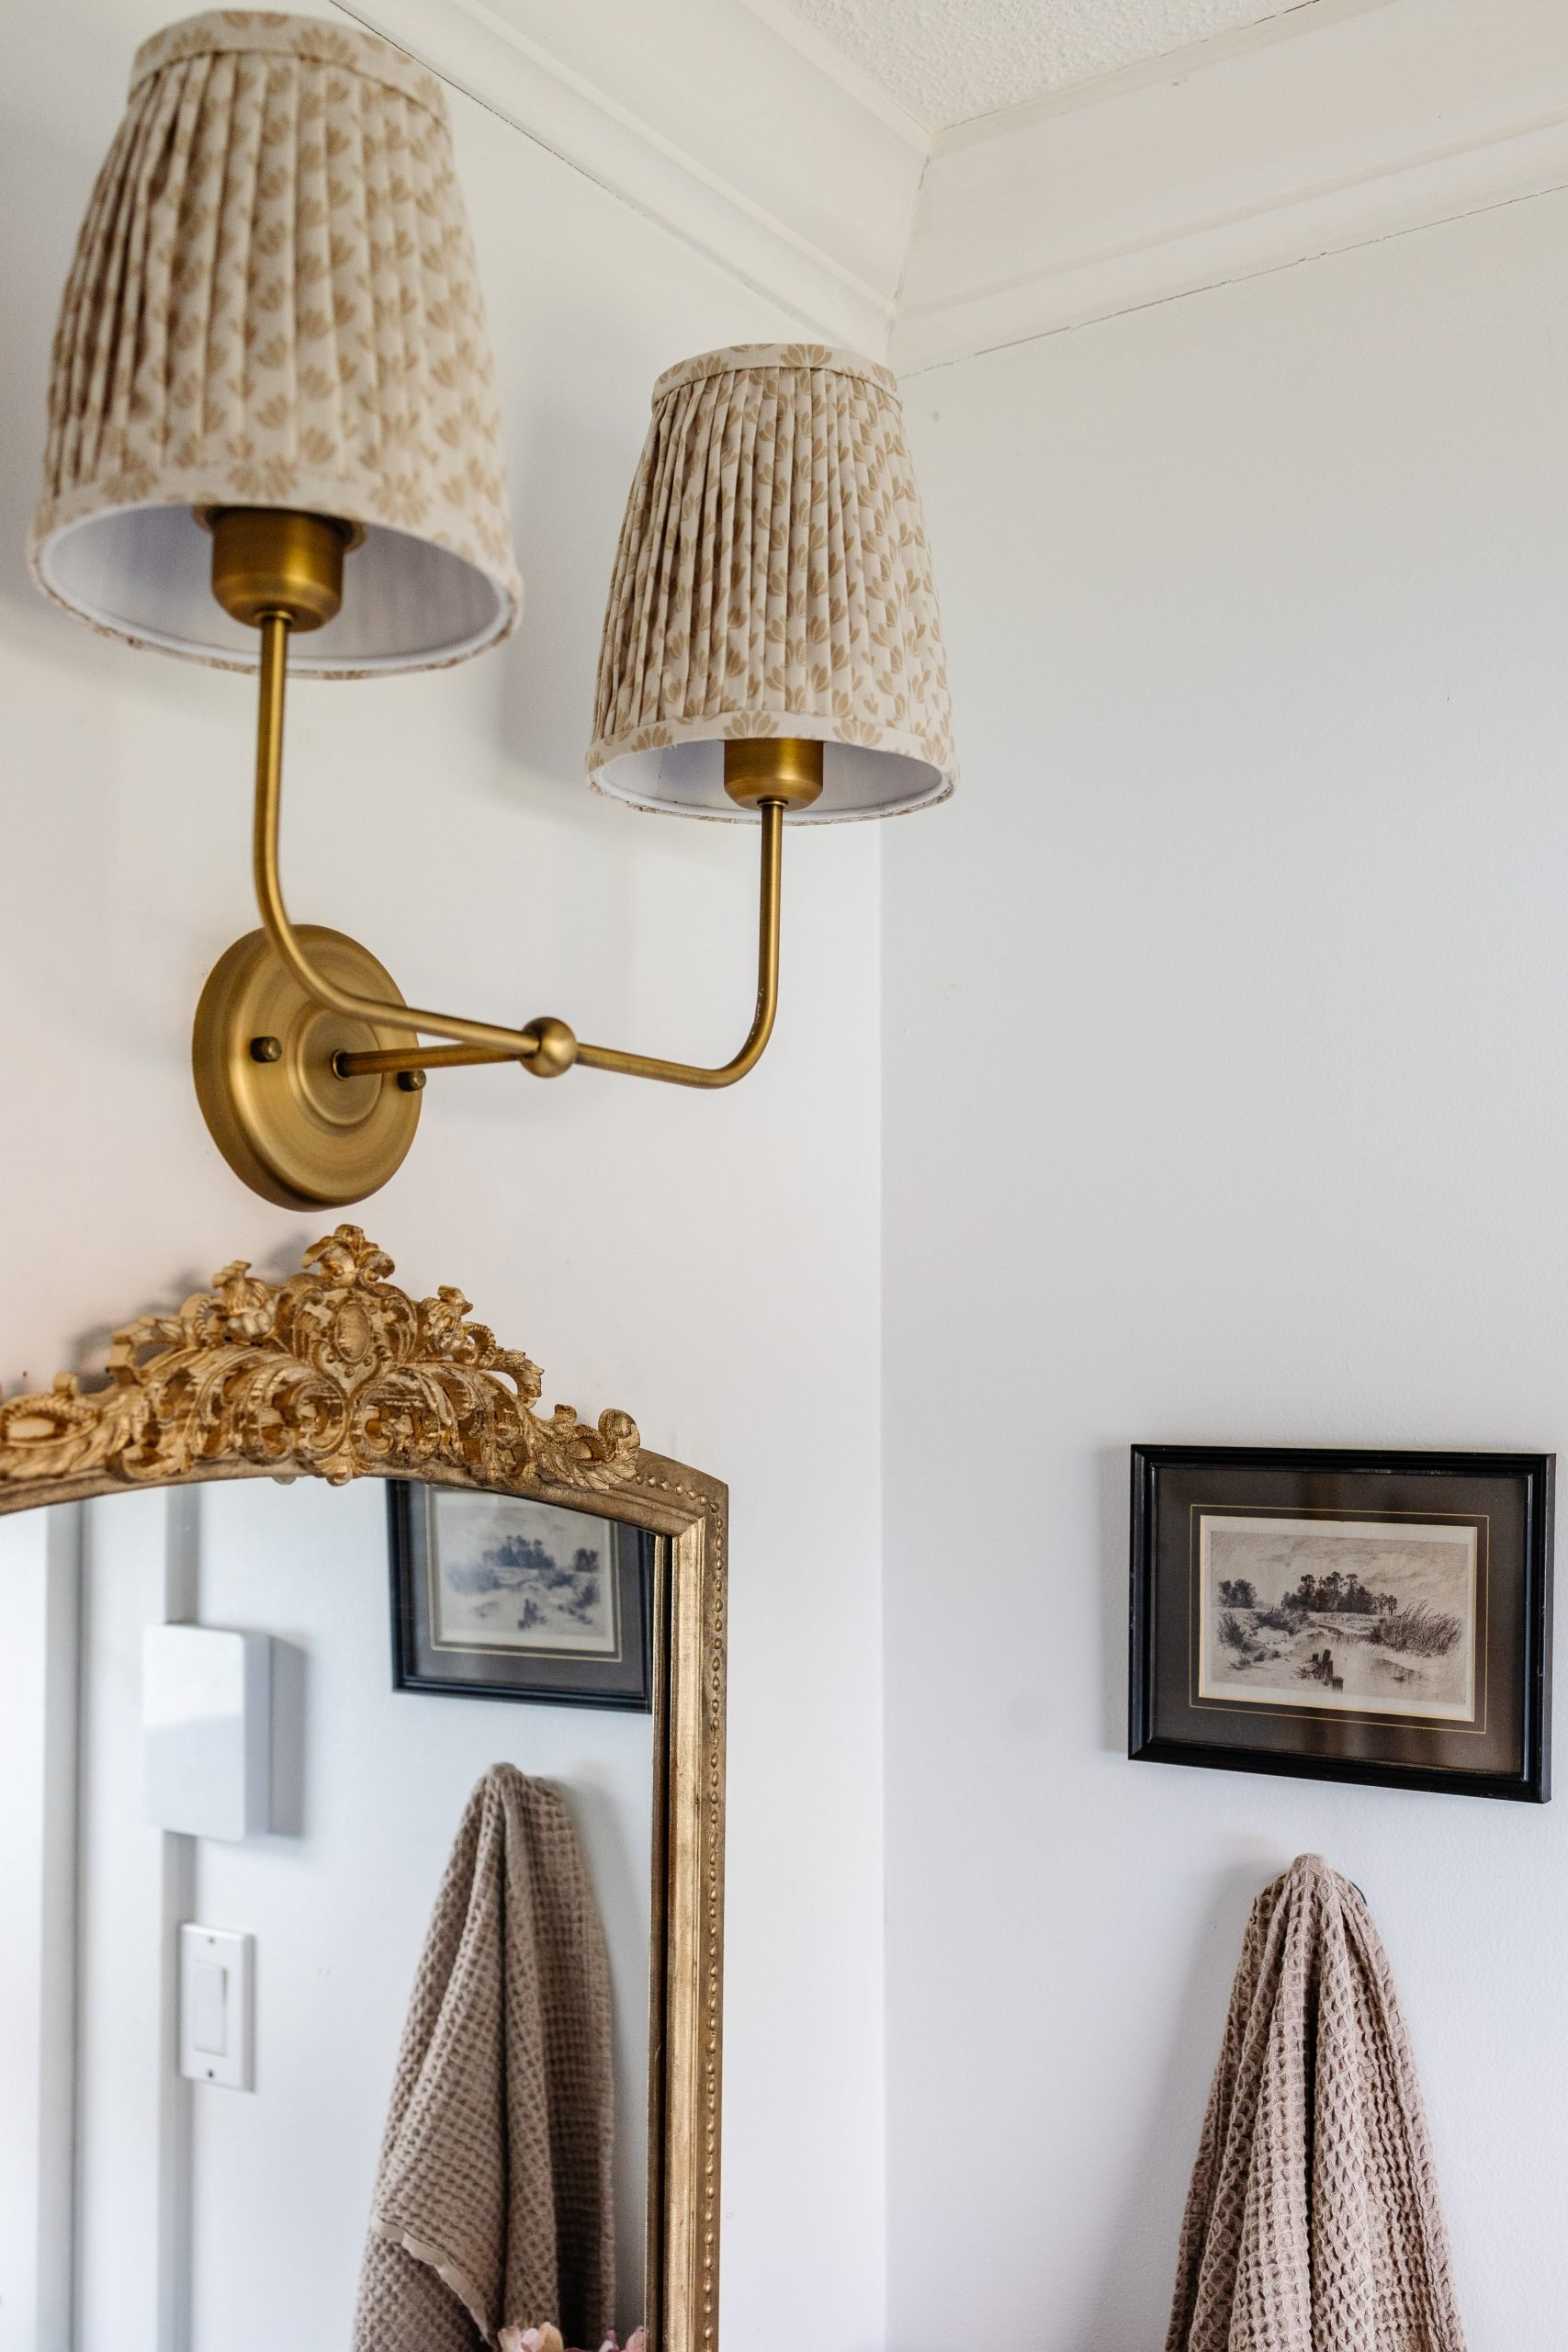 7 ways to decorate a small bathroom  Do you rent or do you have a non-existent budget?  Here are 7 ways to inexpensively decorate your bathroom!